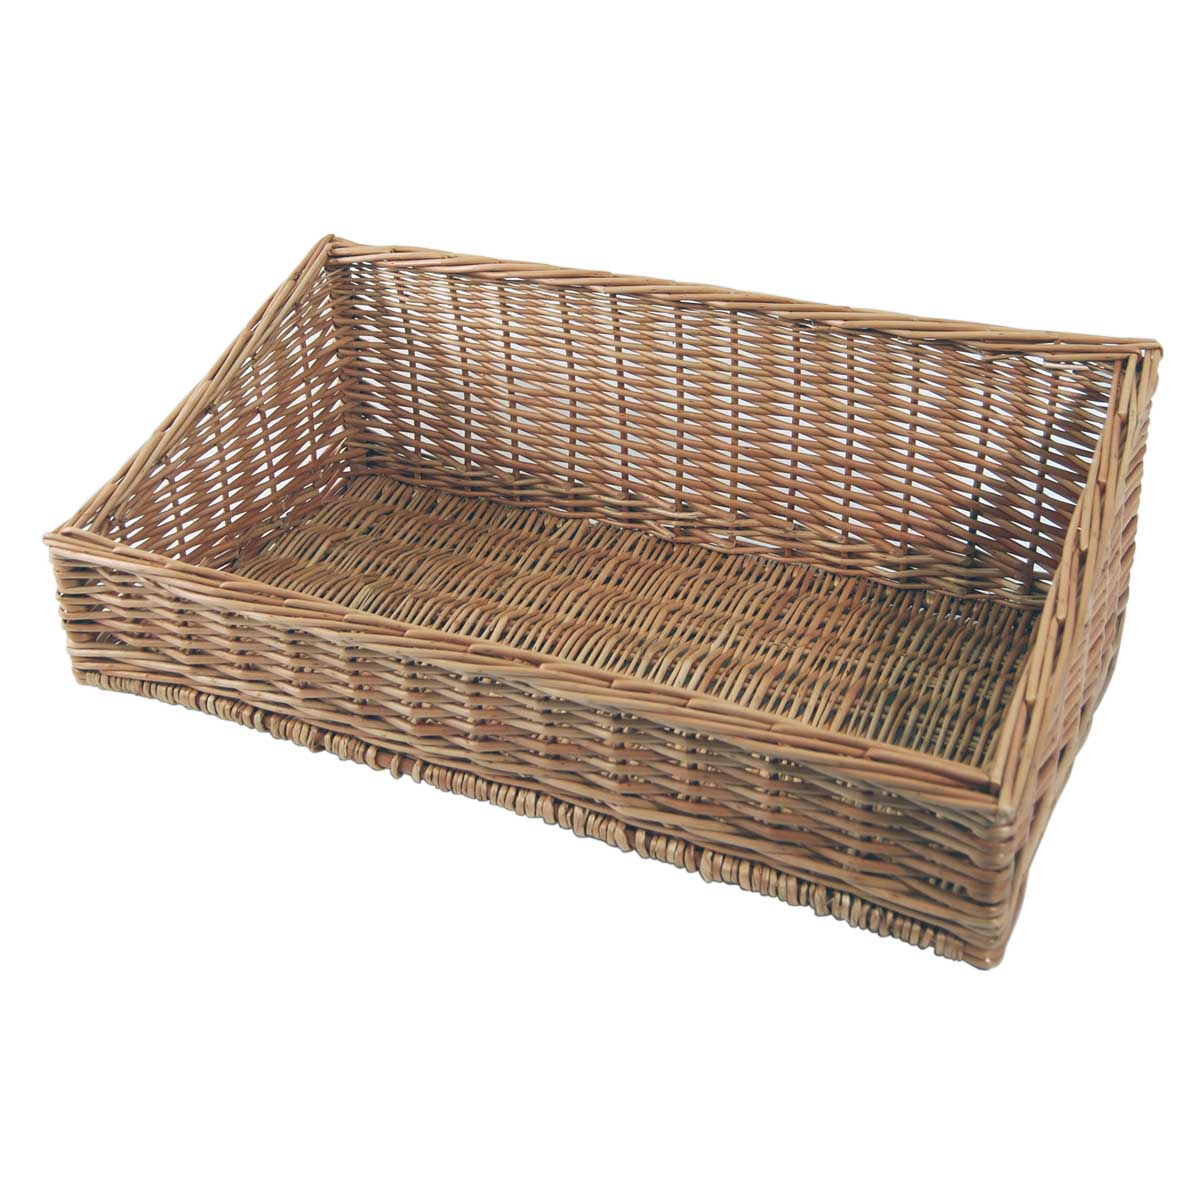 Image of: Ideas Wicker Display Baskets